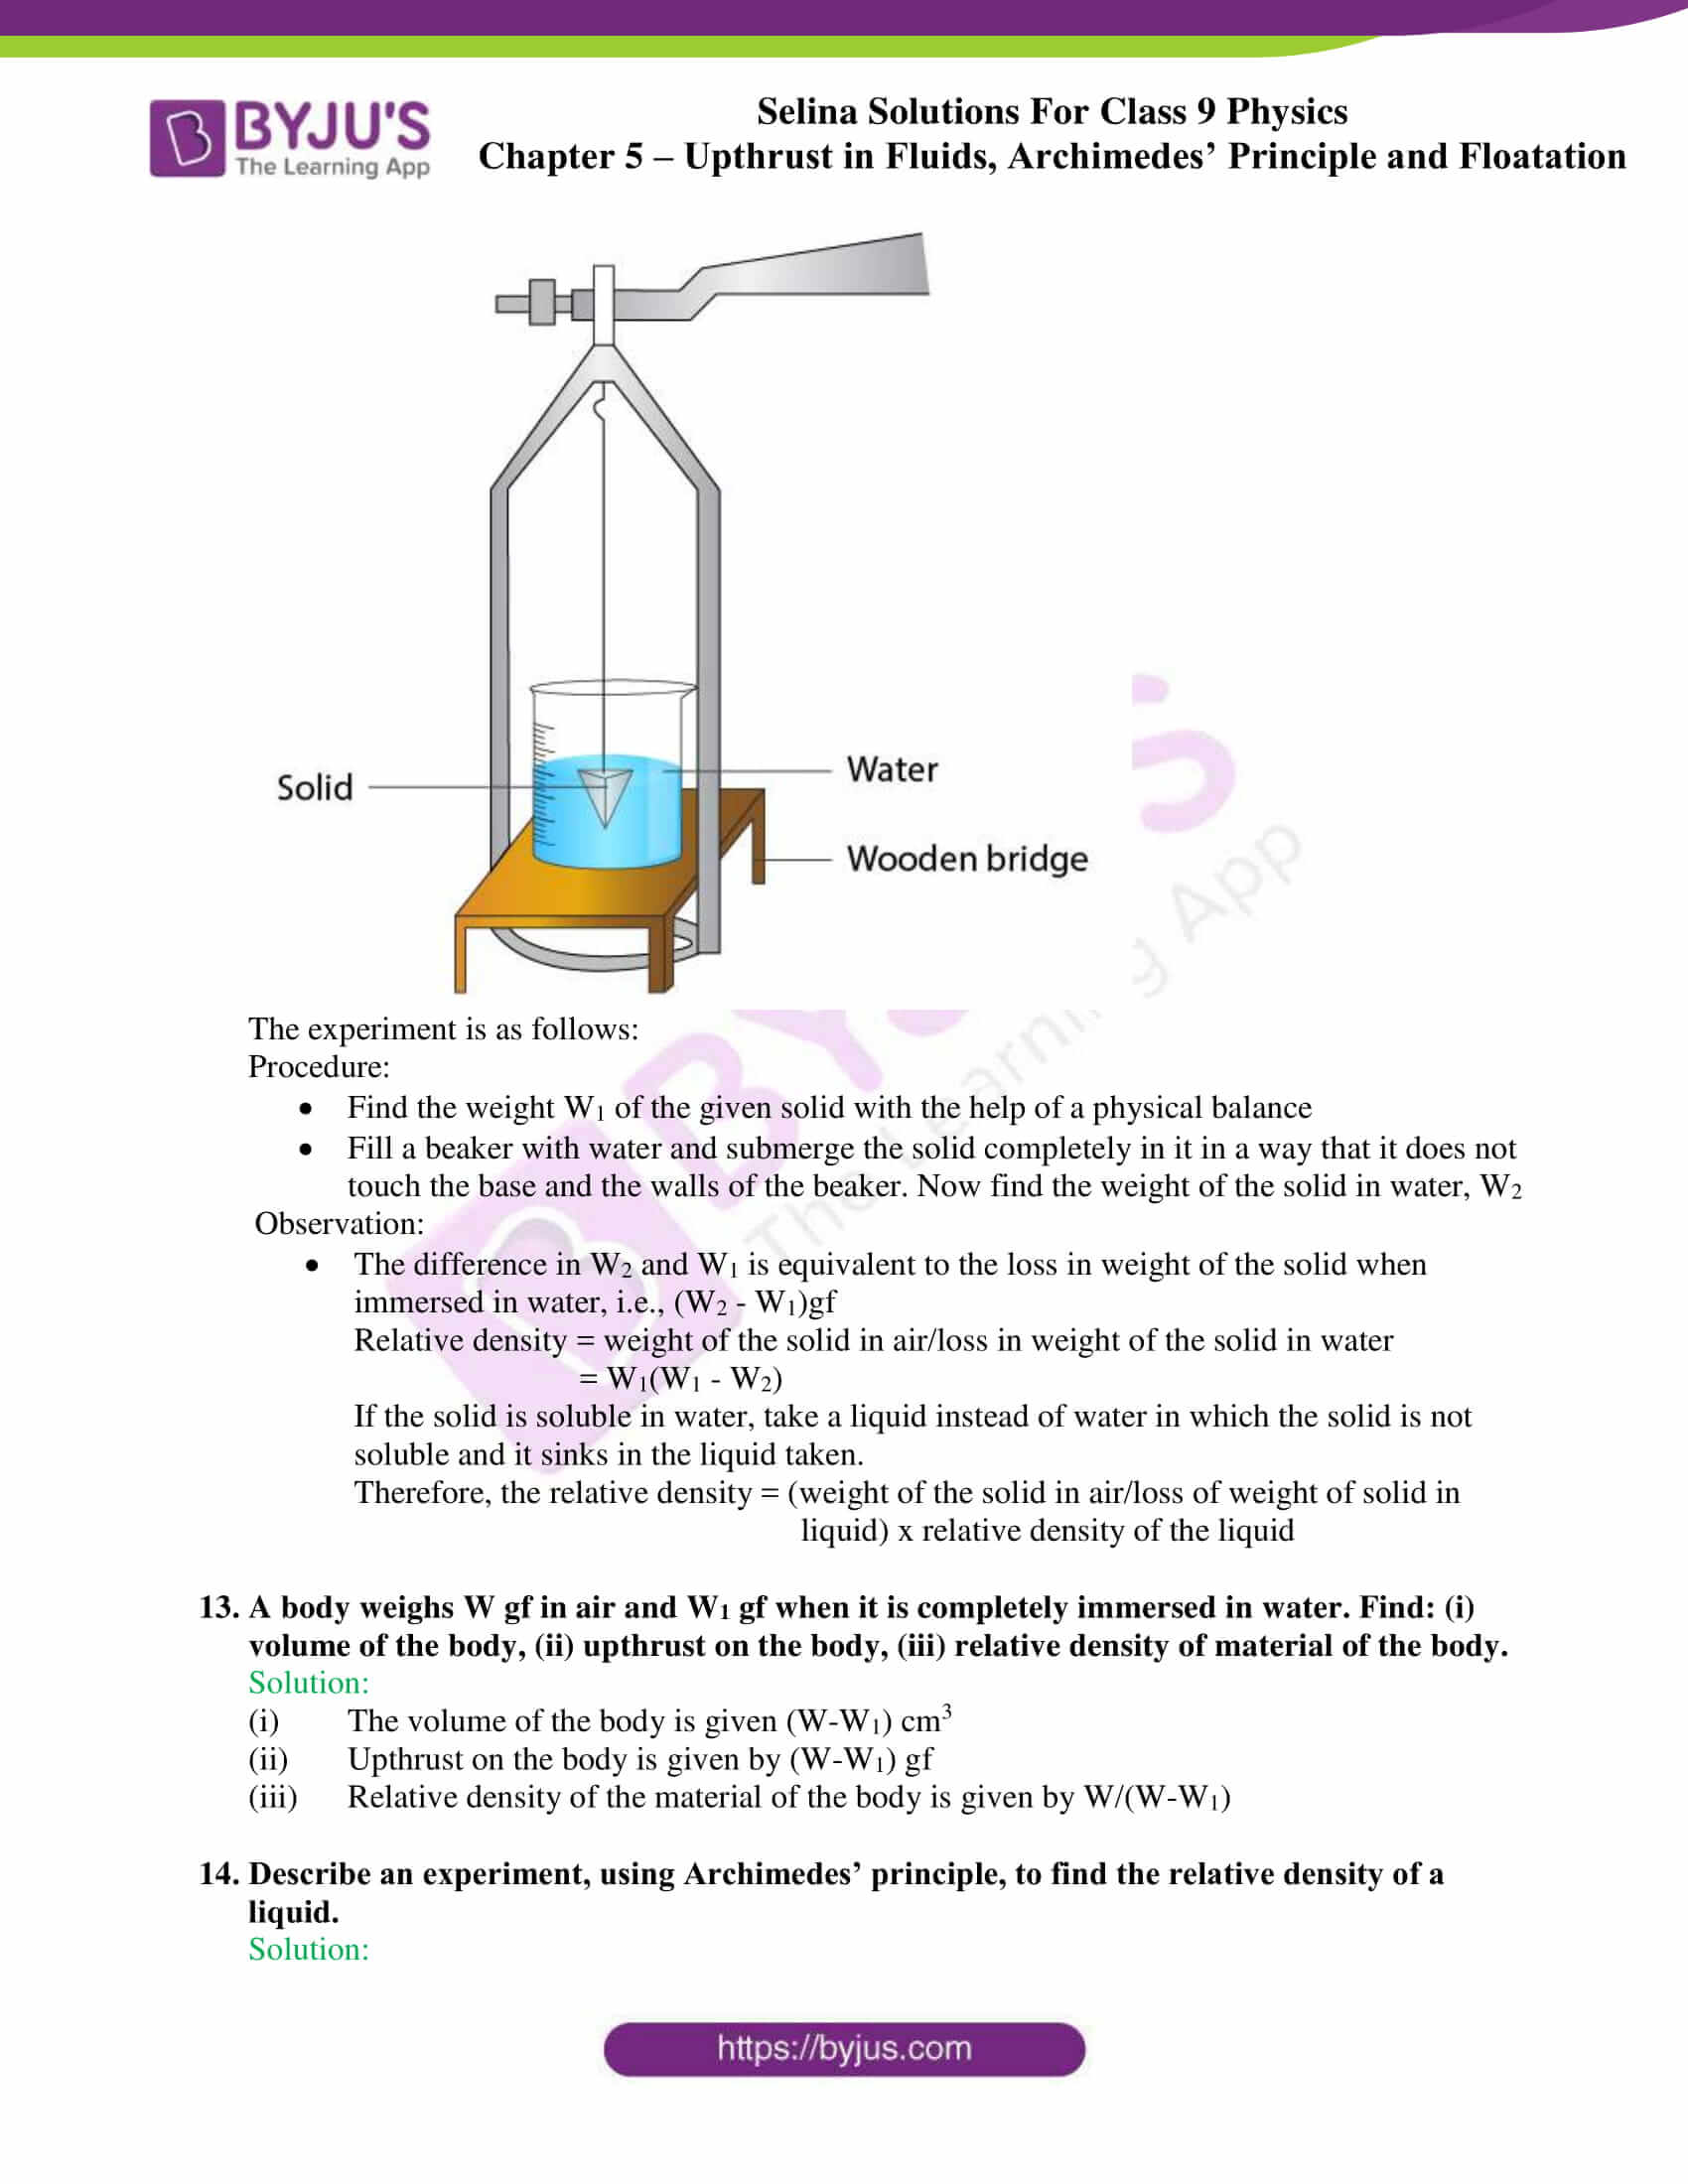 selina solutions class 9 physics chapter 5 part 16